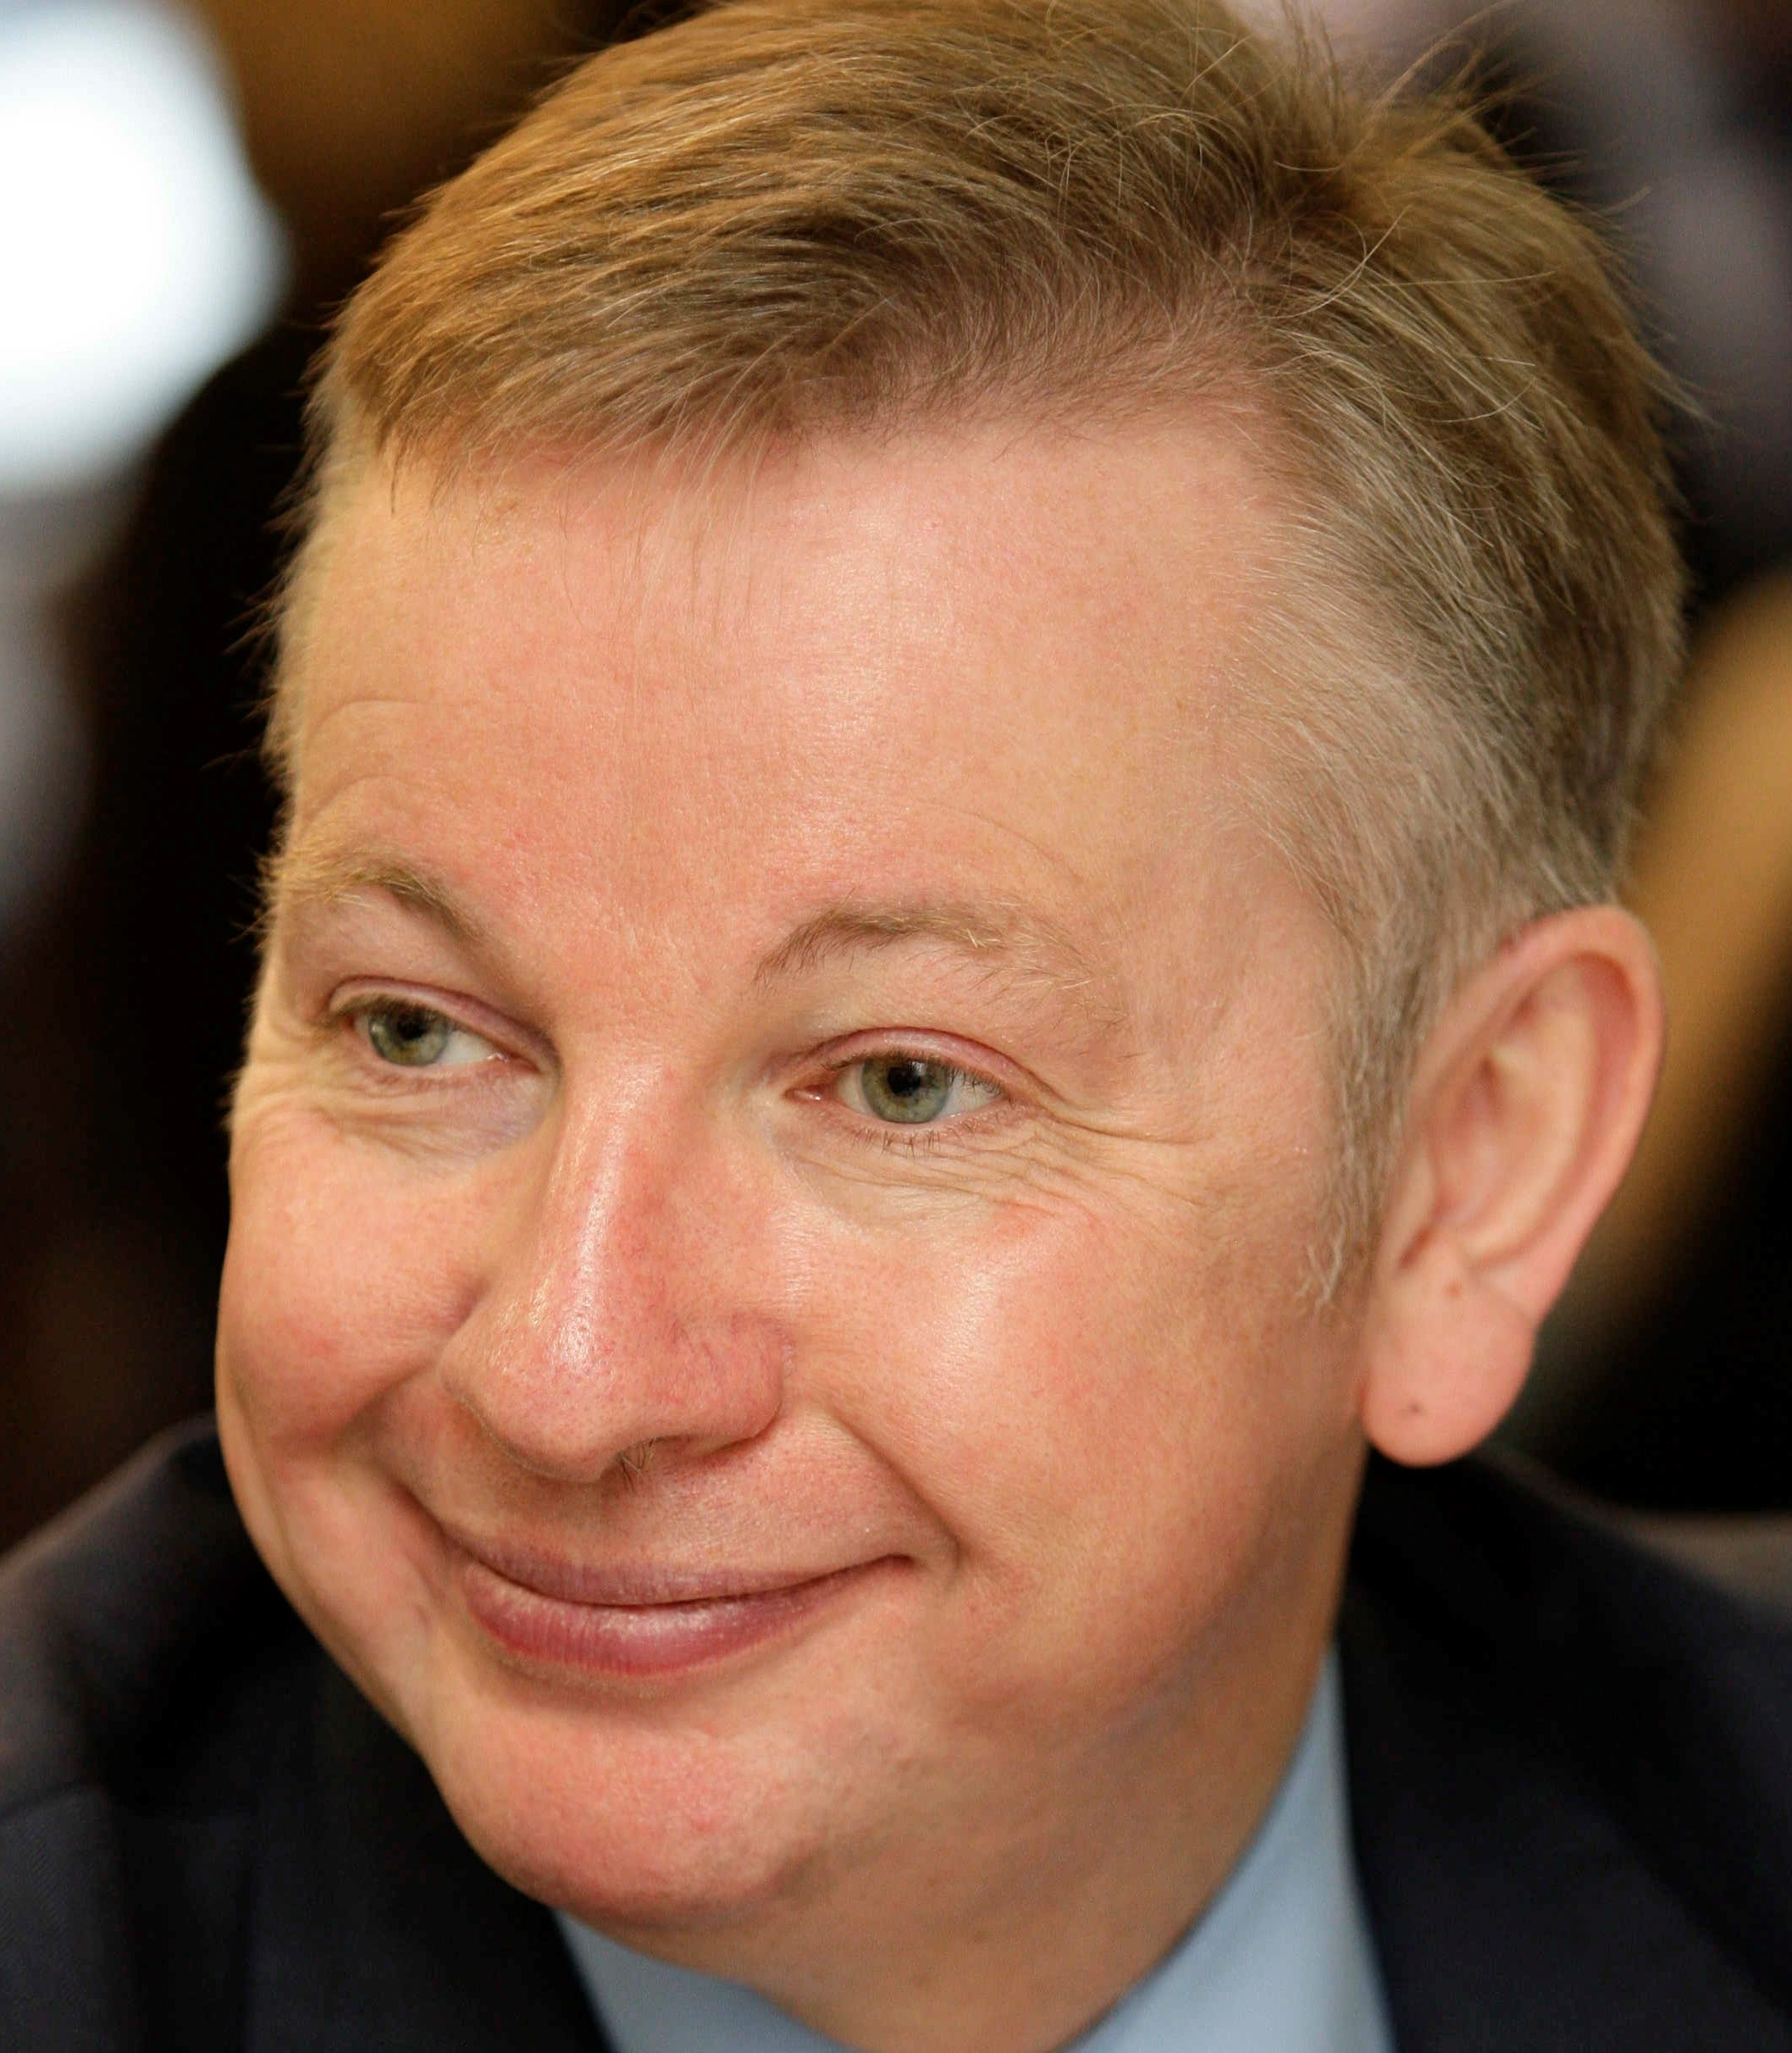 Cheeky: Education Secretary Michael Gove